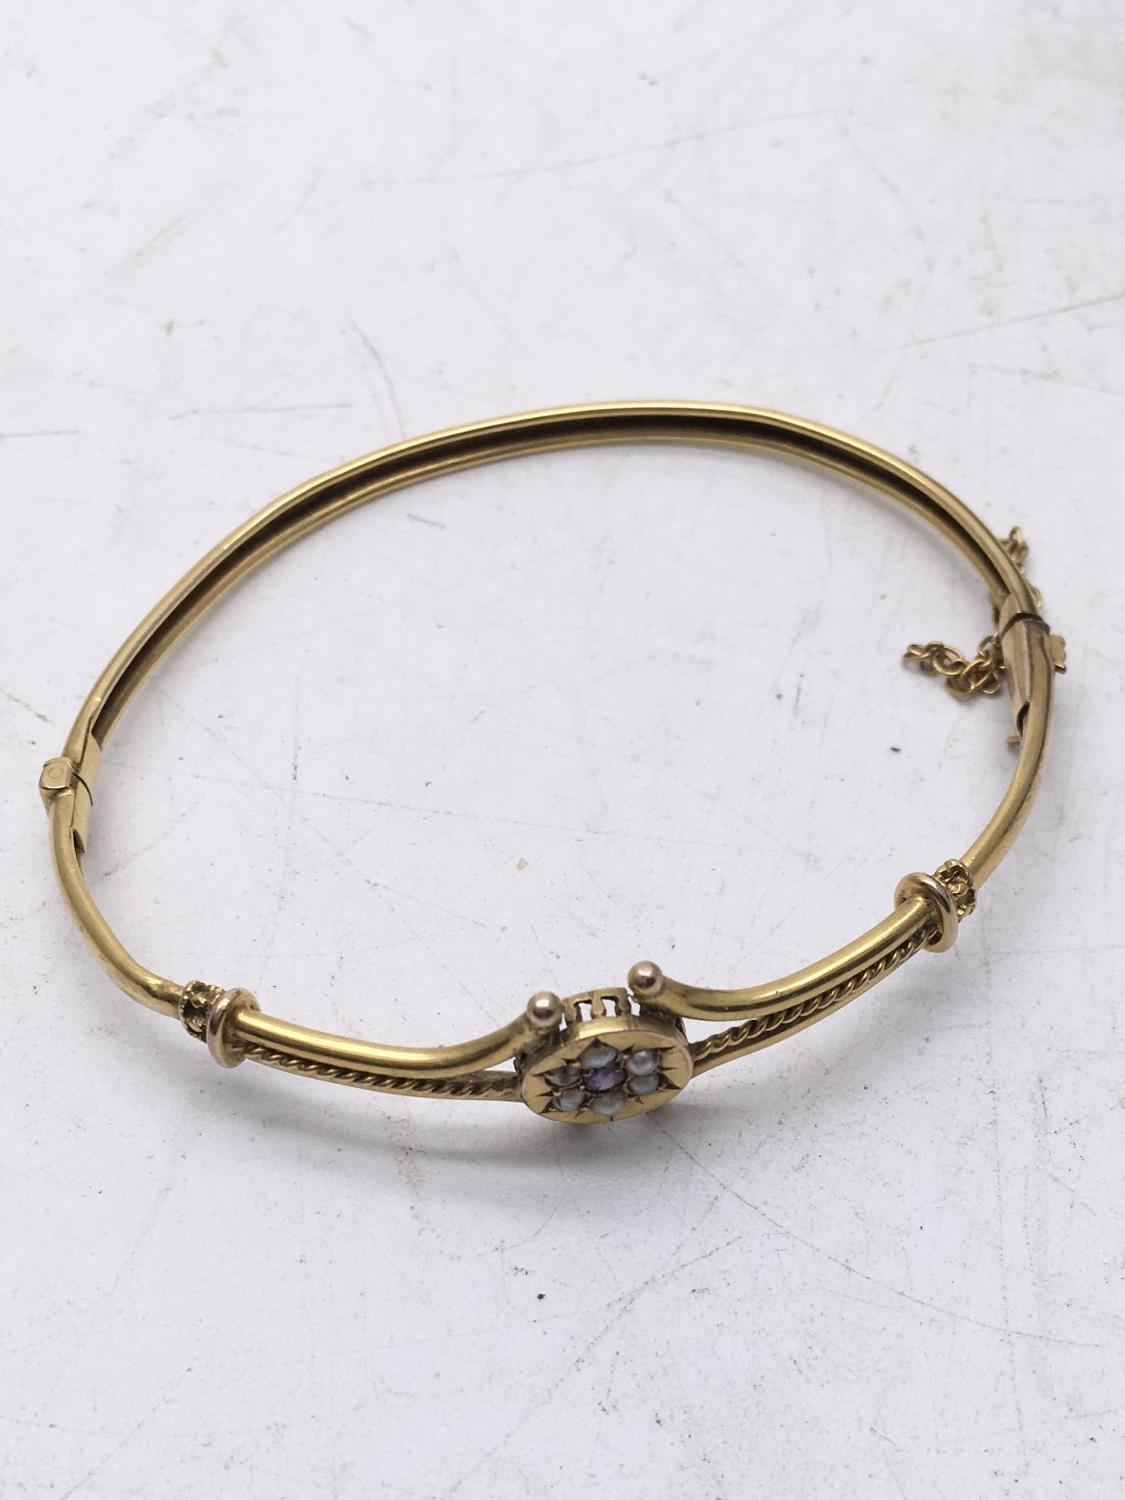 Delicate Victorian period Ladies bangle with gold coloured body set with seed pearl and amethyst - Image 3 of 4